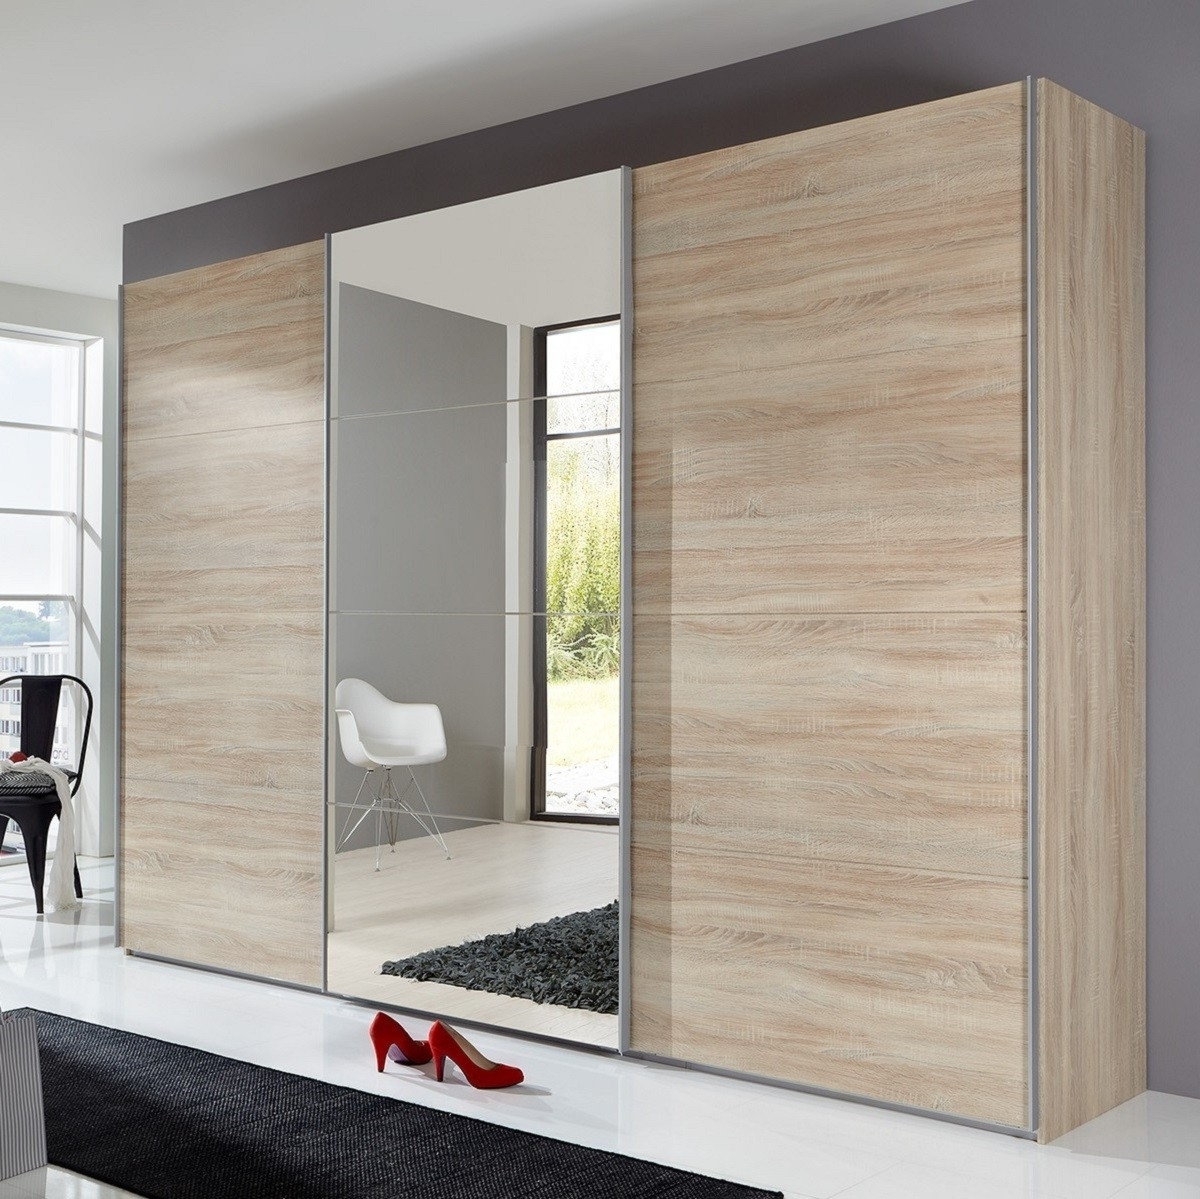 Three Door Wardrobes With Mirror In 2017 B8fad6b5ce3ba4ace851eb70333cf0cb (View 13 of 15)